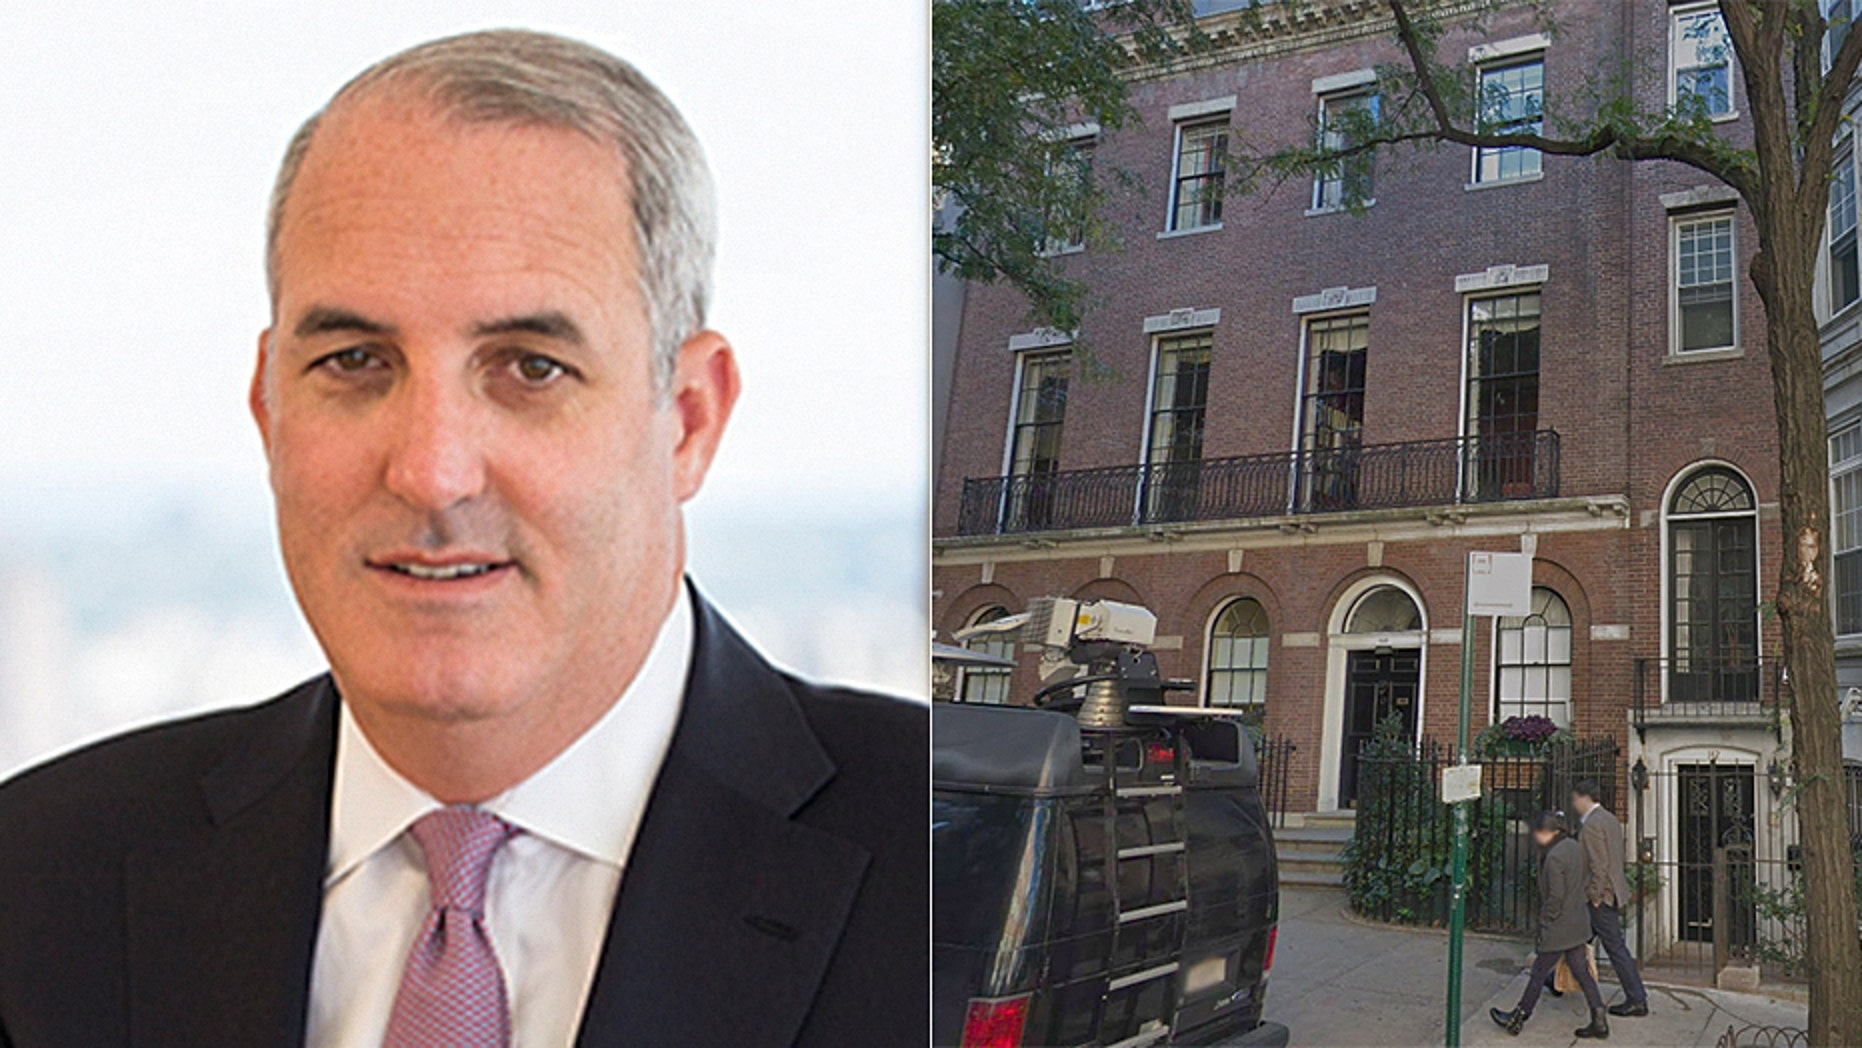 Doug Band, one of Bill Clinton's closest confidants, recently purchased the Manhattan mansion of David Rockefeller.